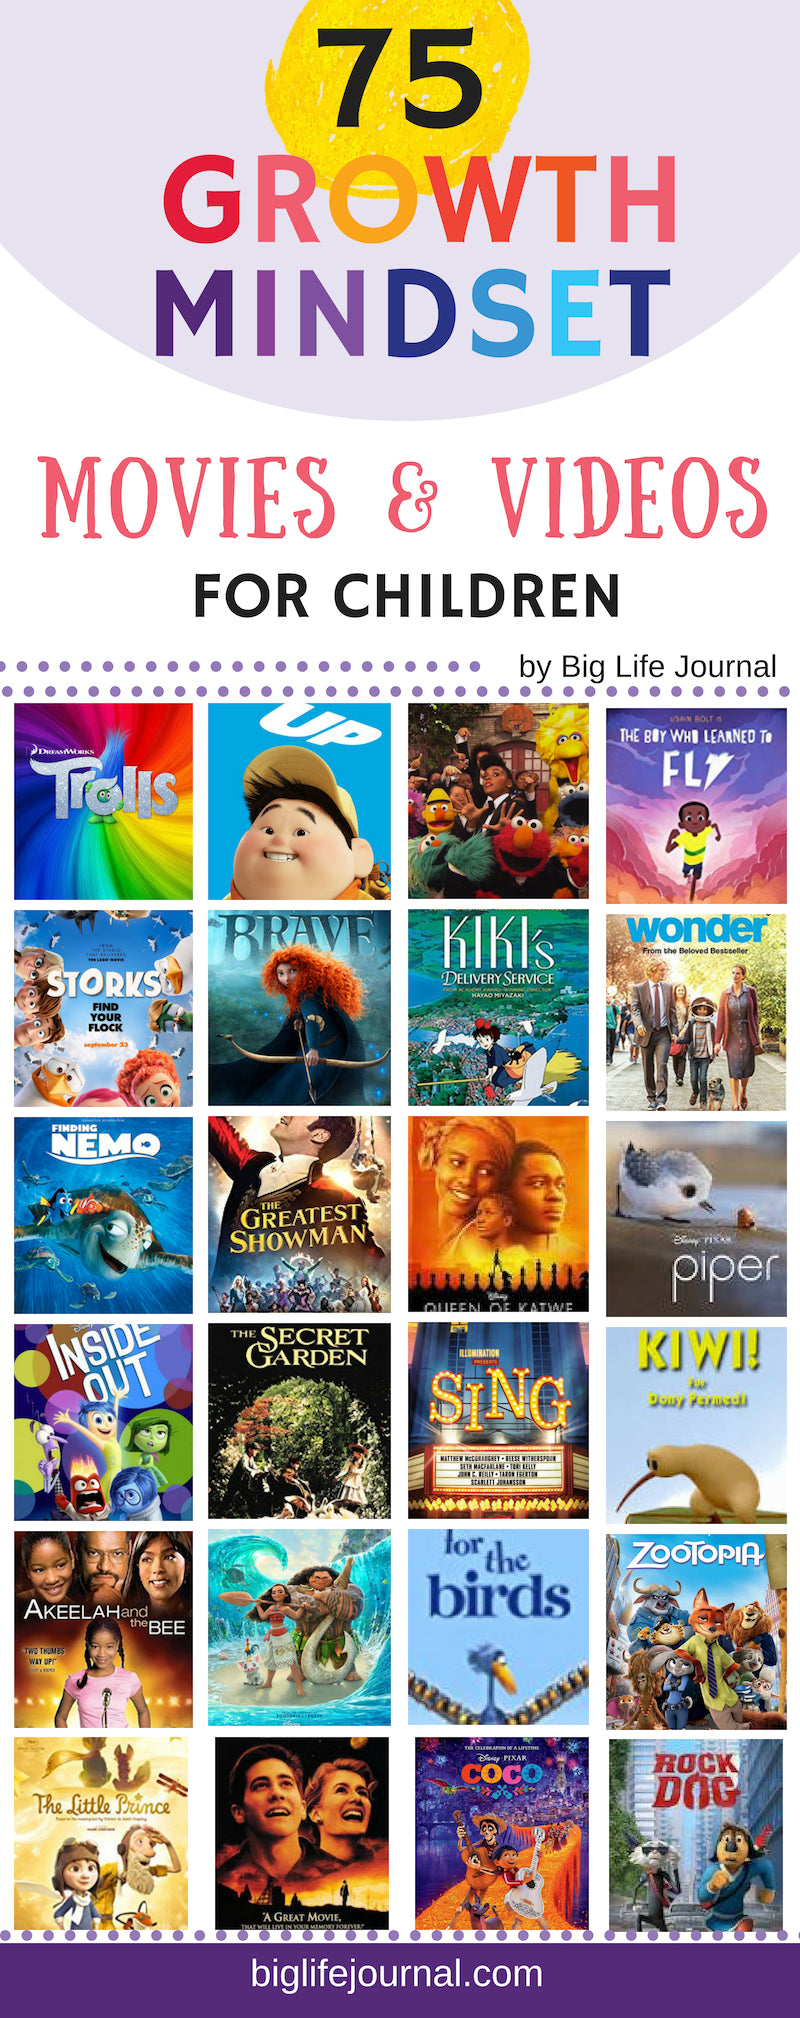 growth mindset movies kids adults